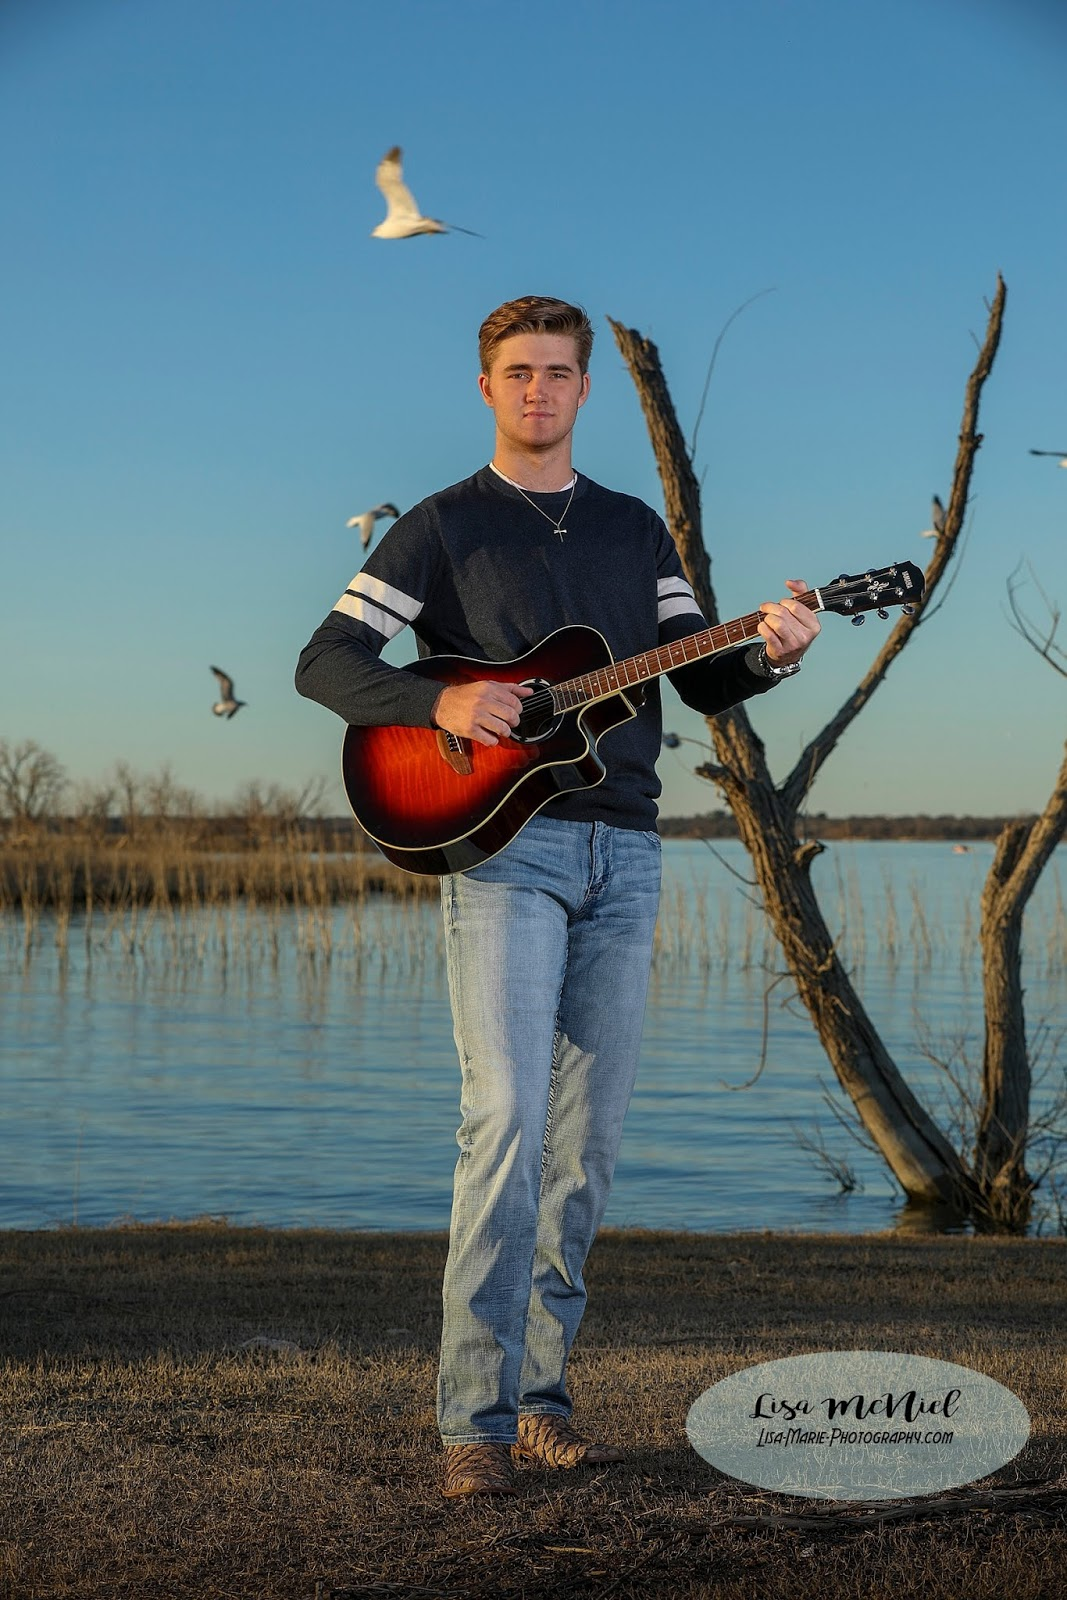 Handsome tall young man playing guitar in front of lake